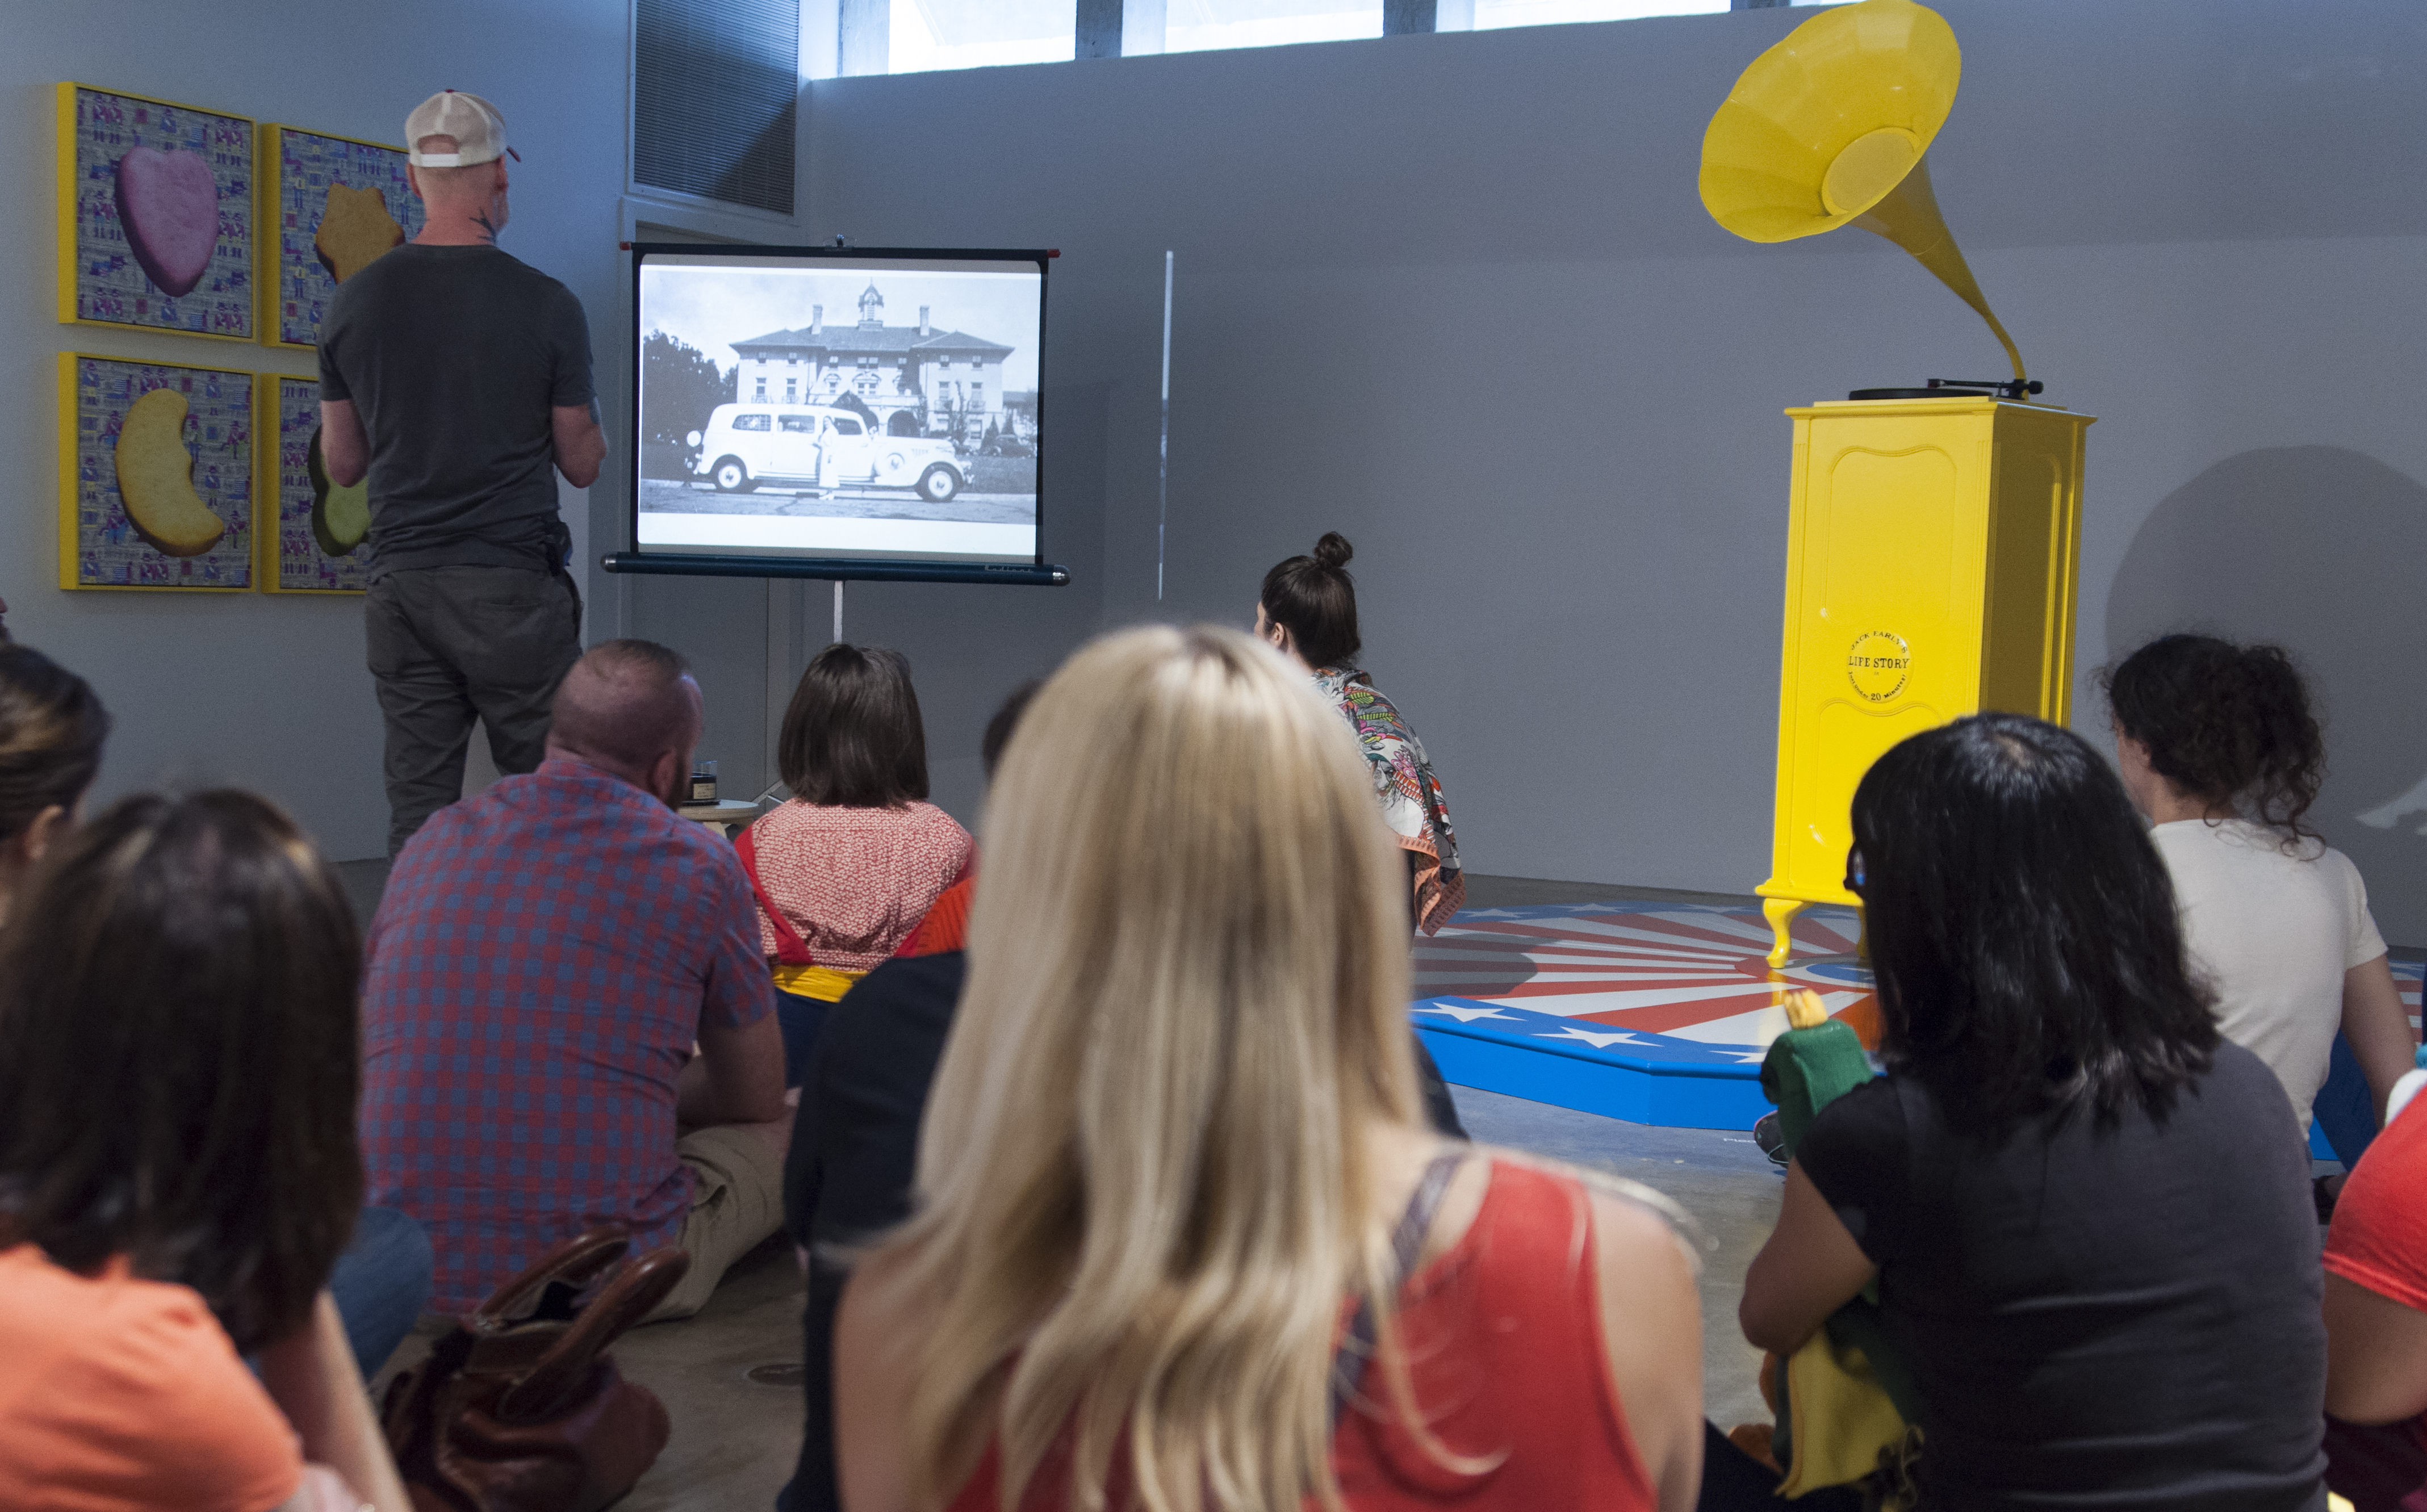 Jack Early Presentation For A Better Yesterday Exhibition At CAMH, 2017. Photo By Ronald L. Jones.